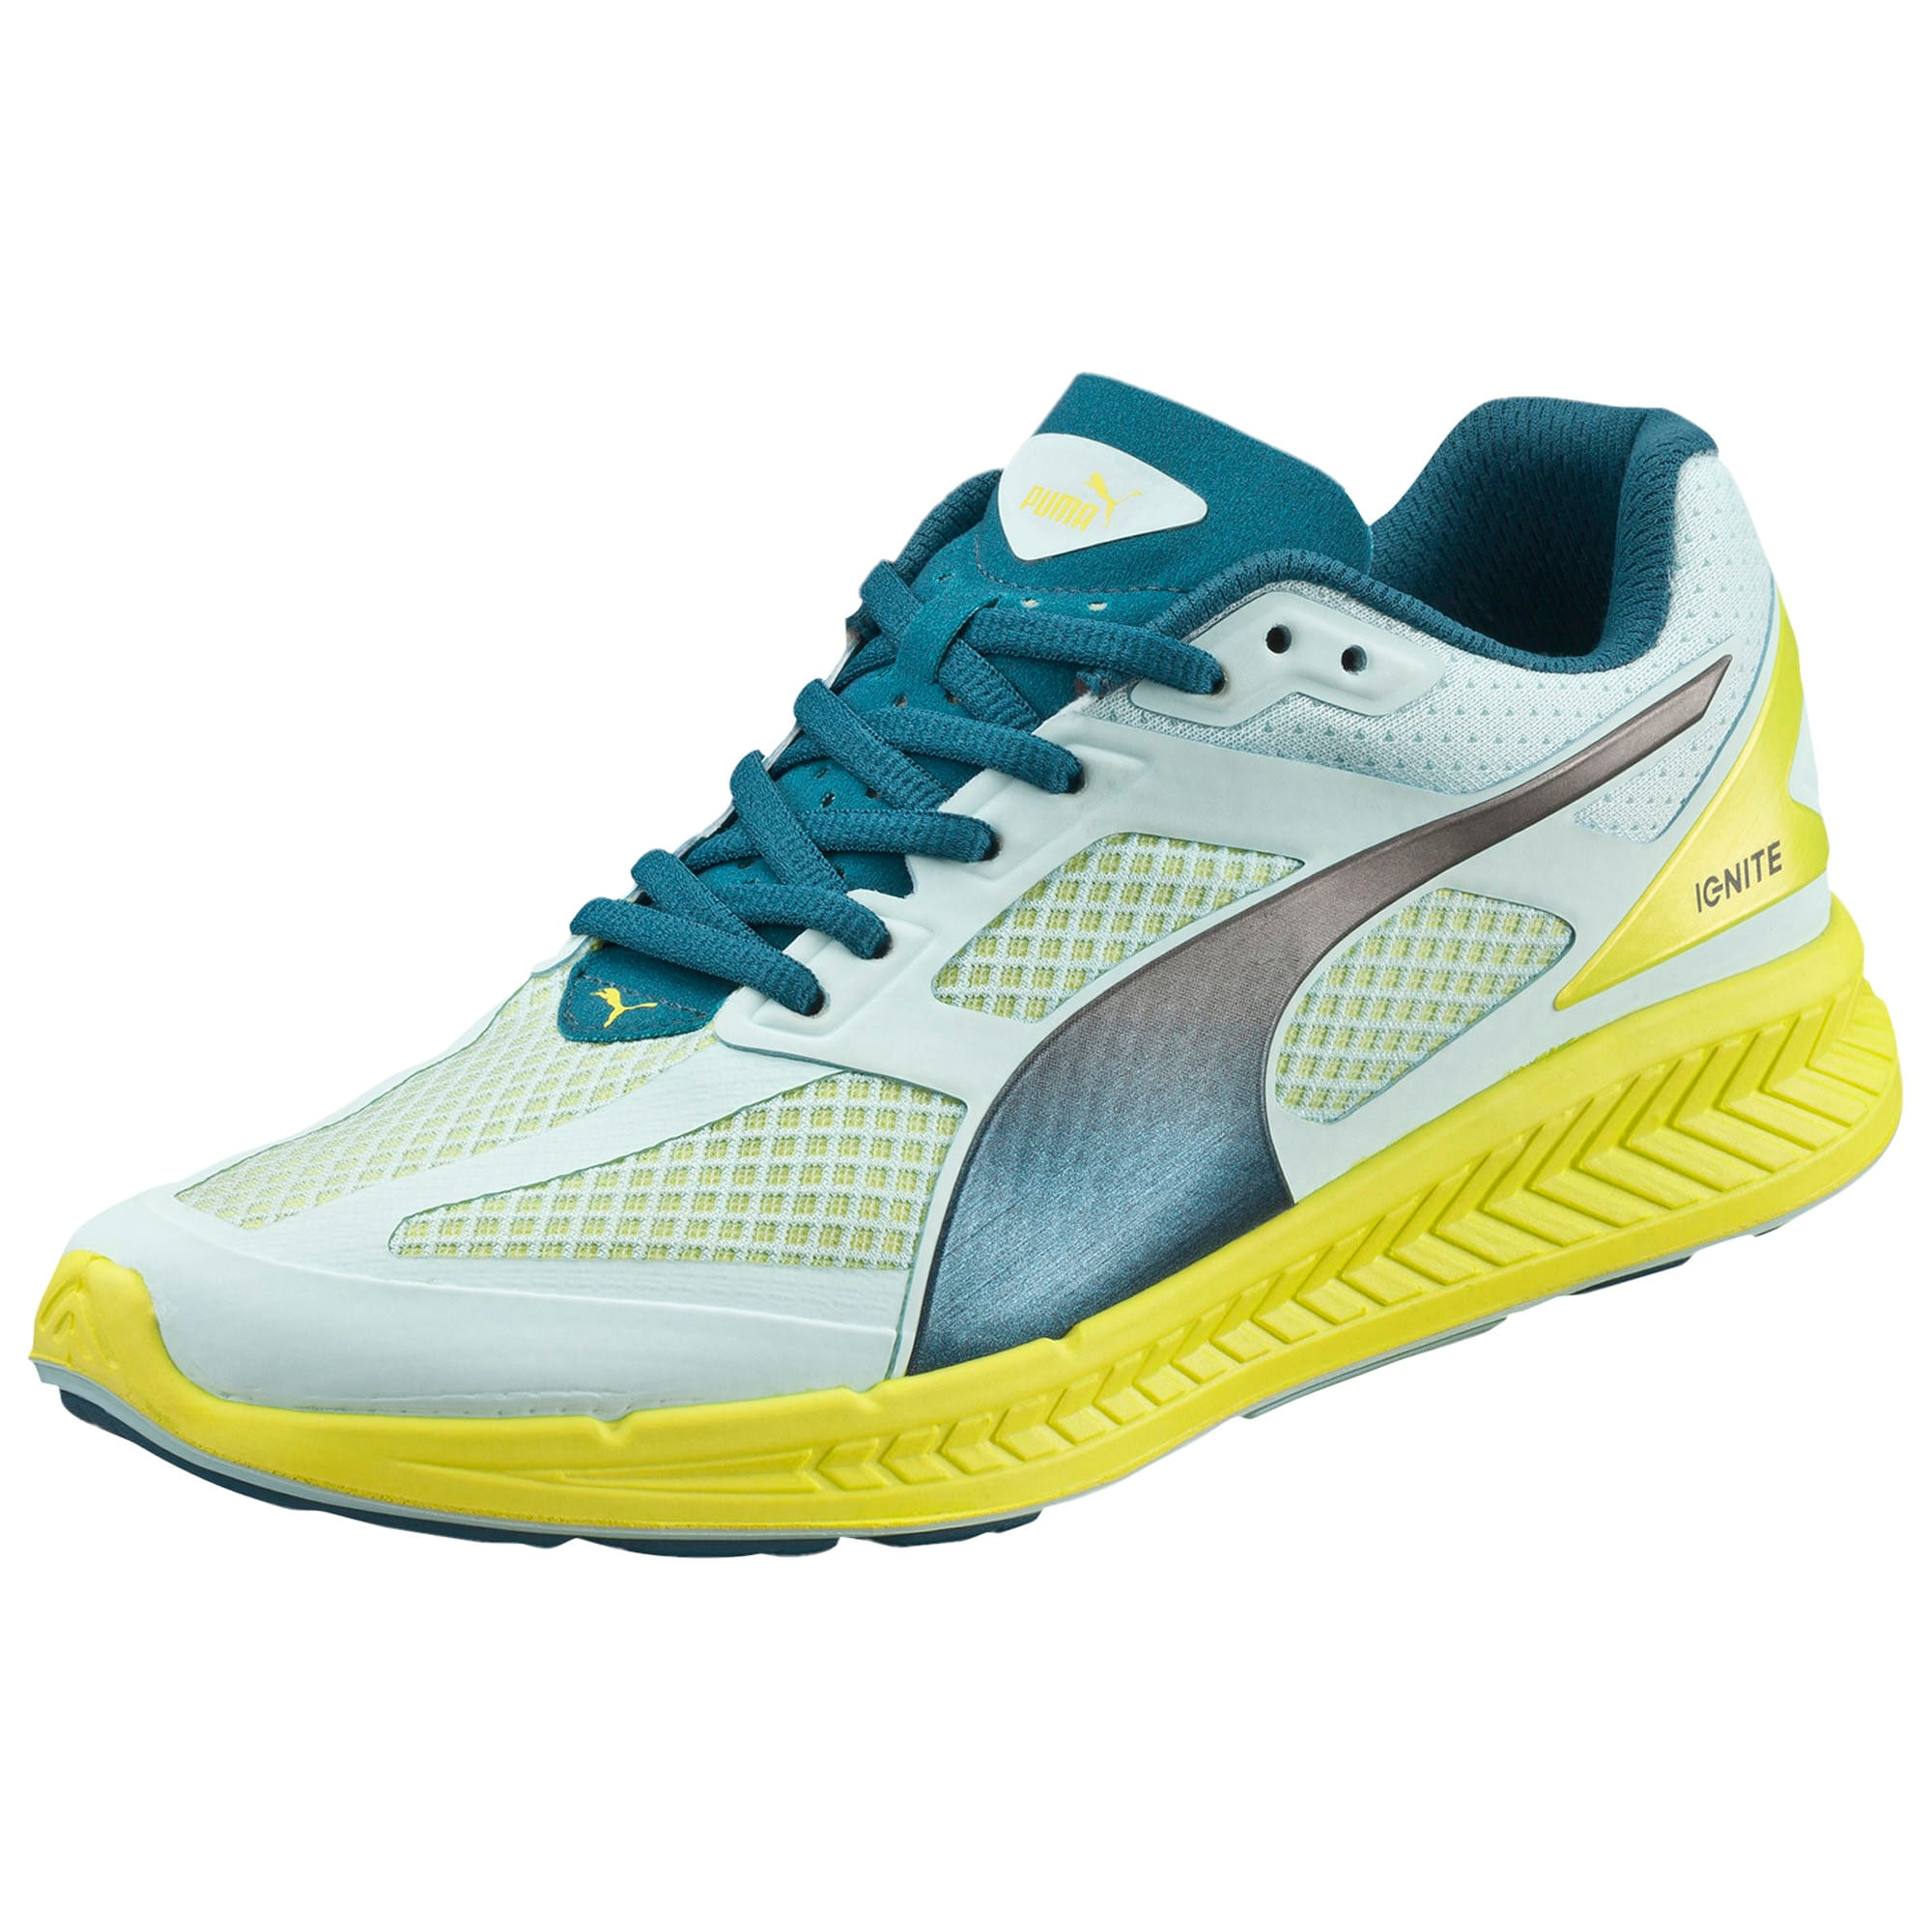 Thumbnail 1 of IGNITE Mesh Women's Running Shoes, clearwater-poseidon-sul spg, medium-IND